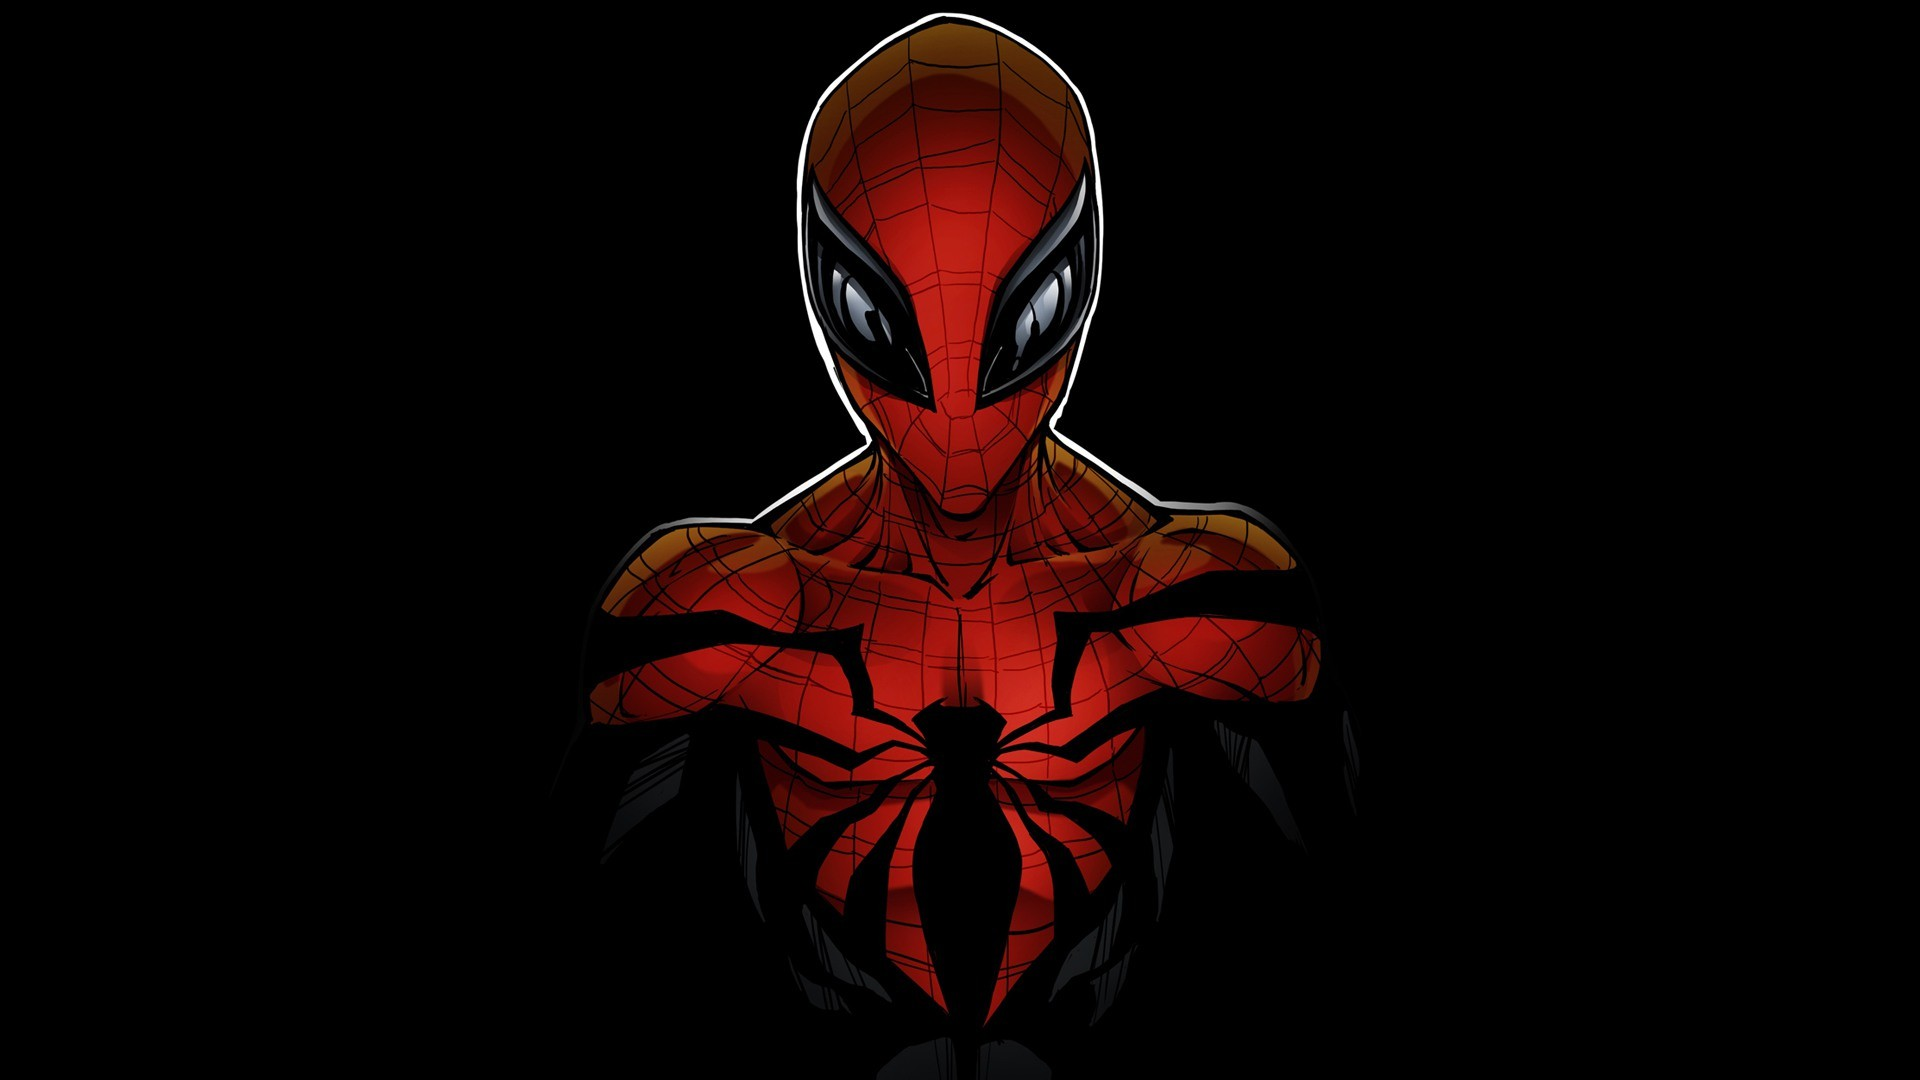 Hd Spiderman Logo Wallpaper 71 Images